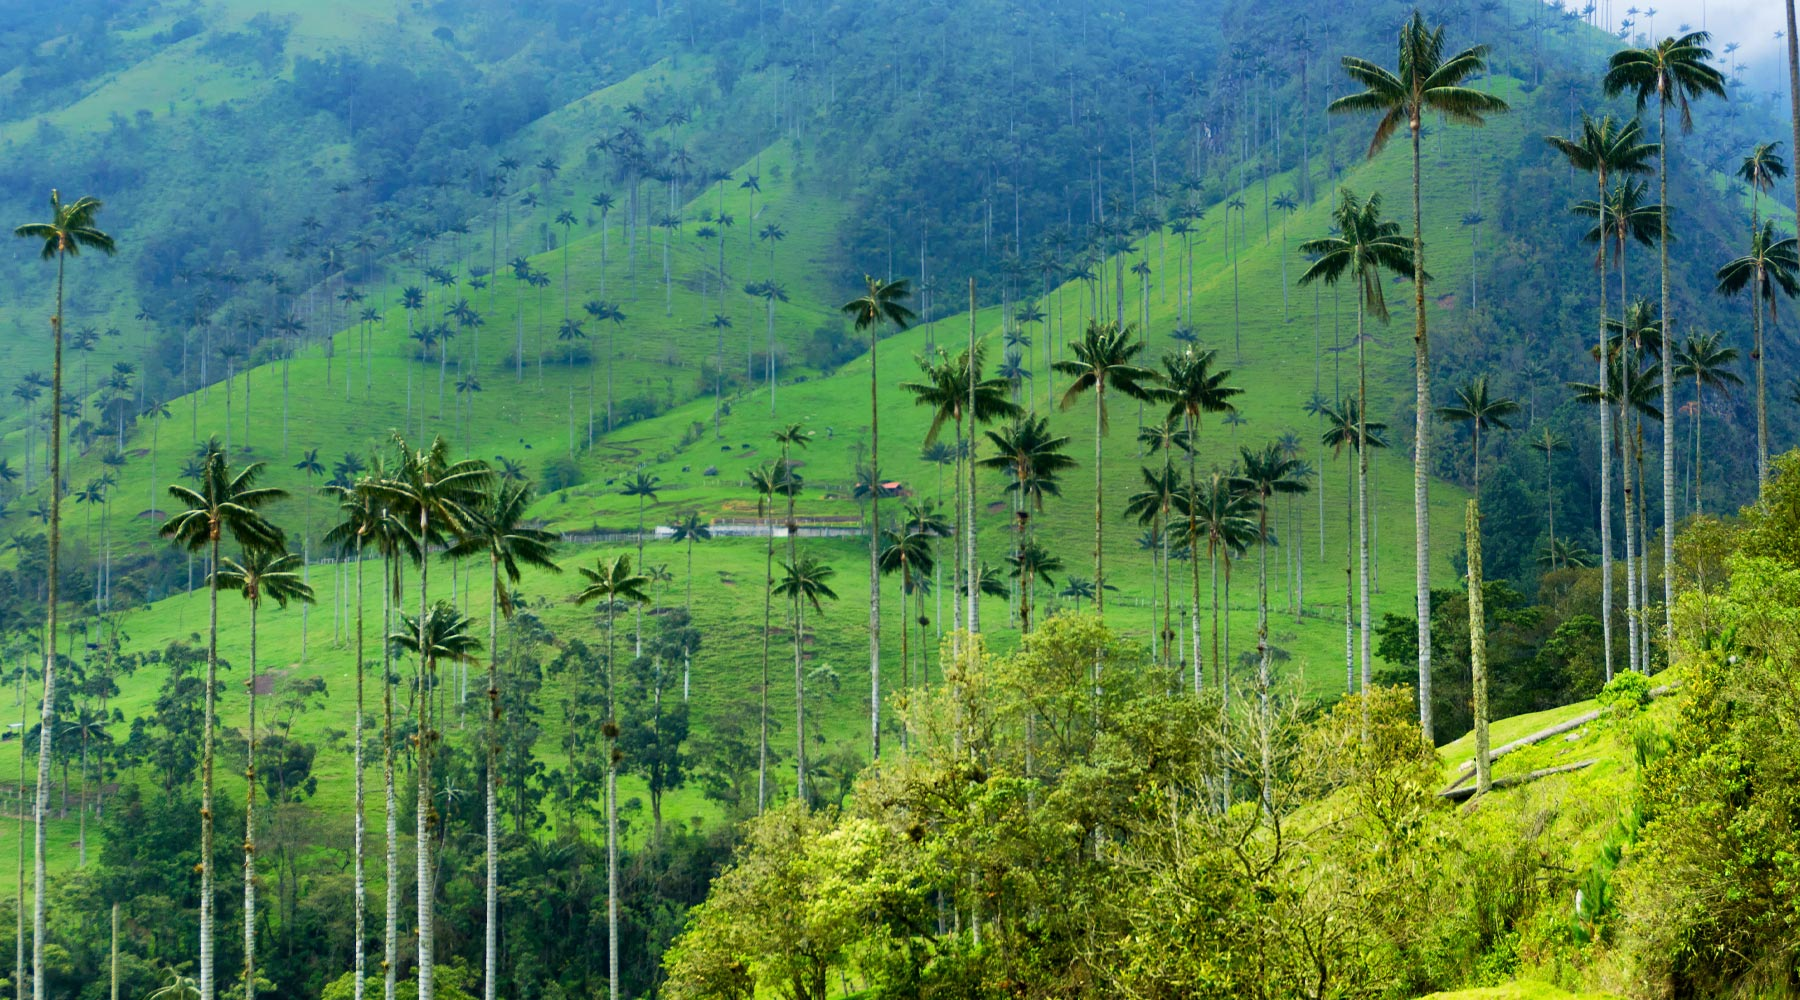 Cocora Valley, Salento – A Mysterious َAttraction in Colombia